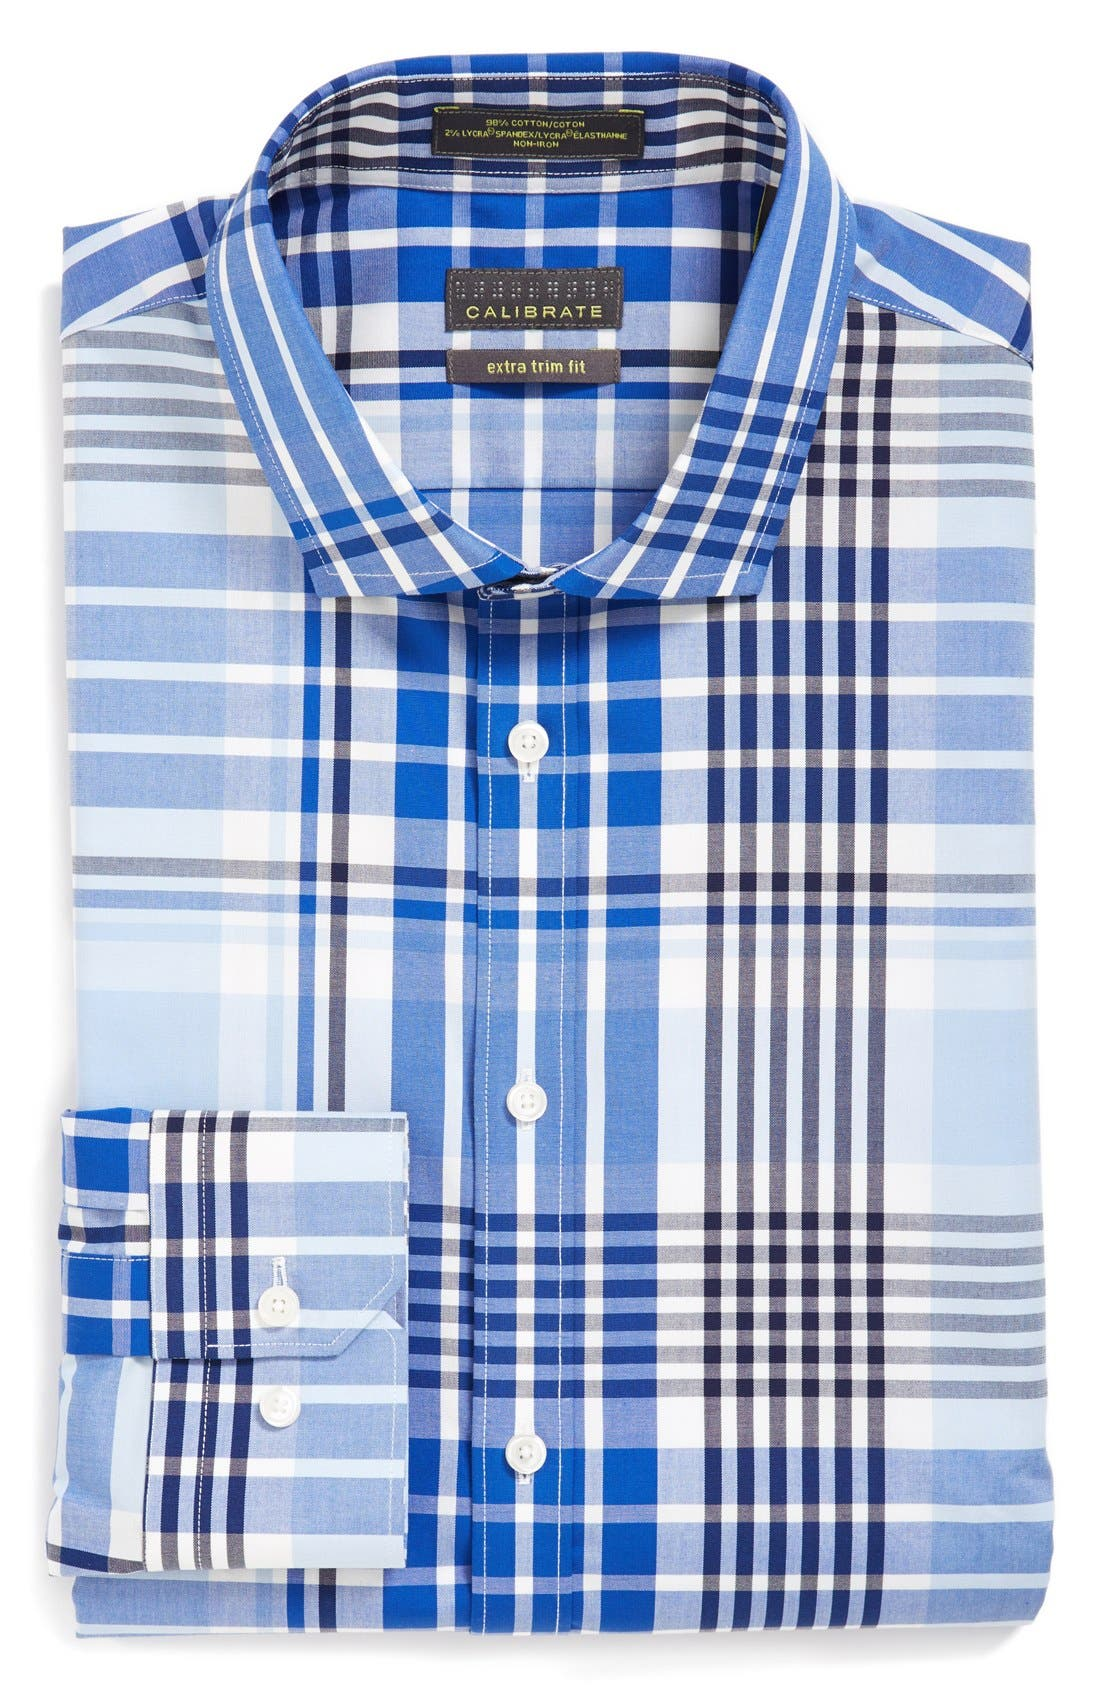 Alternate Image 1 Selected - Calibrate Extra Trim Fit Non-Iron Stretch Plaid Dress Shirt